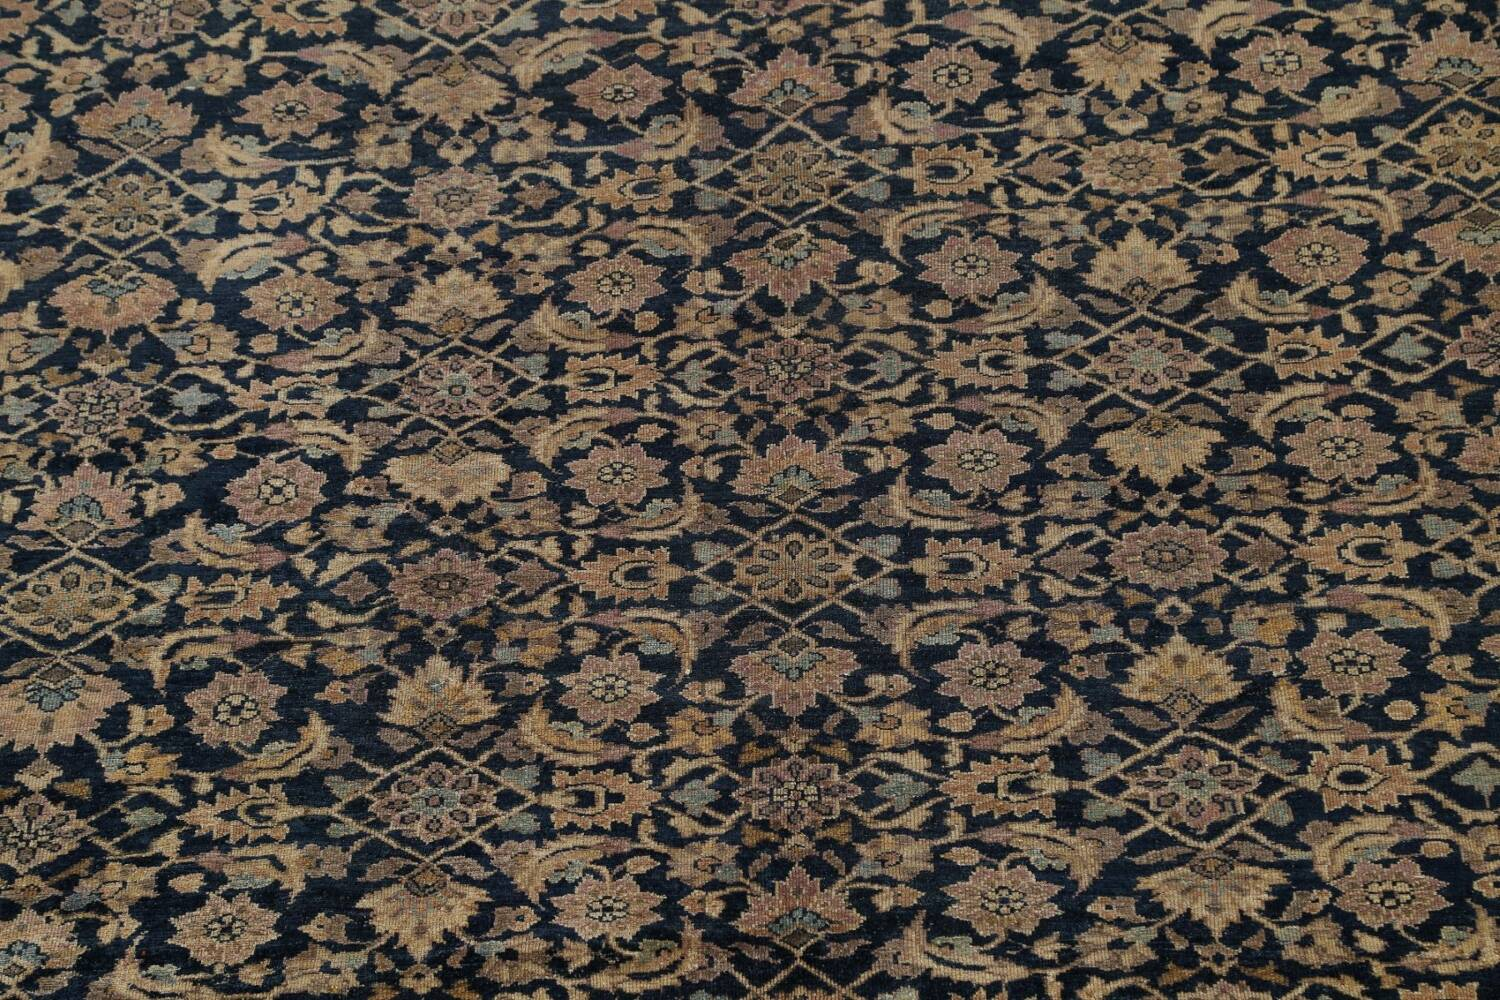 Pre-1900 Antique Vegetable Dye Malayer Persian Area Rug 9x12 image 4